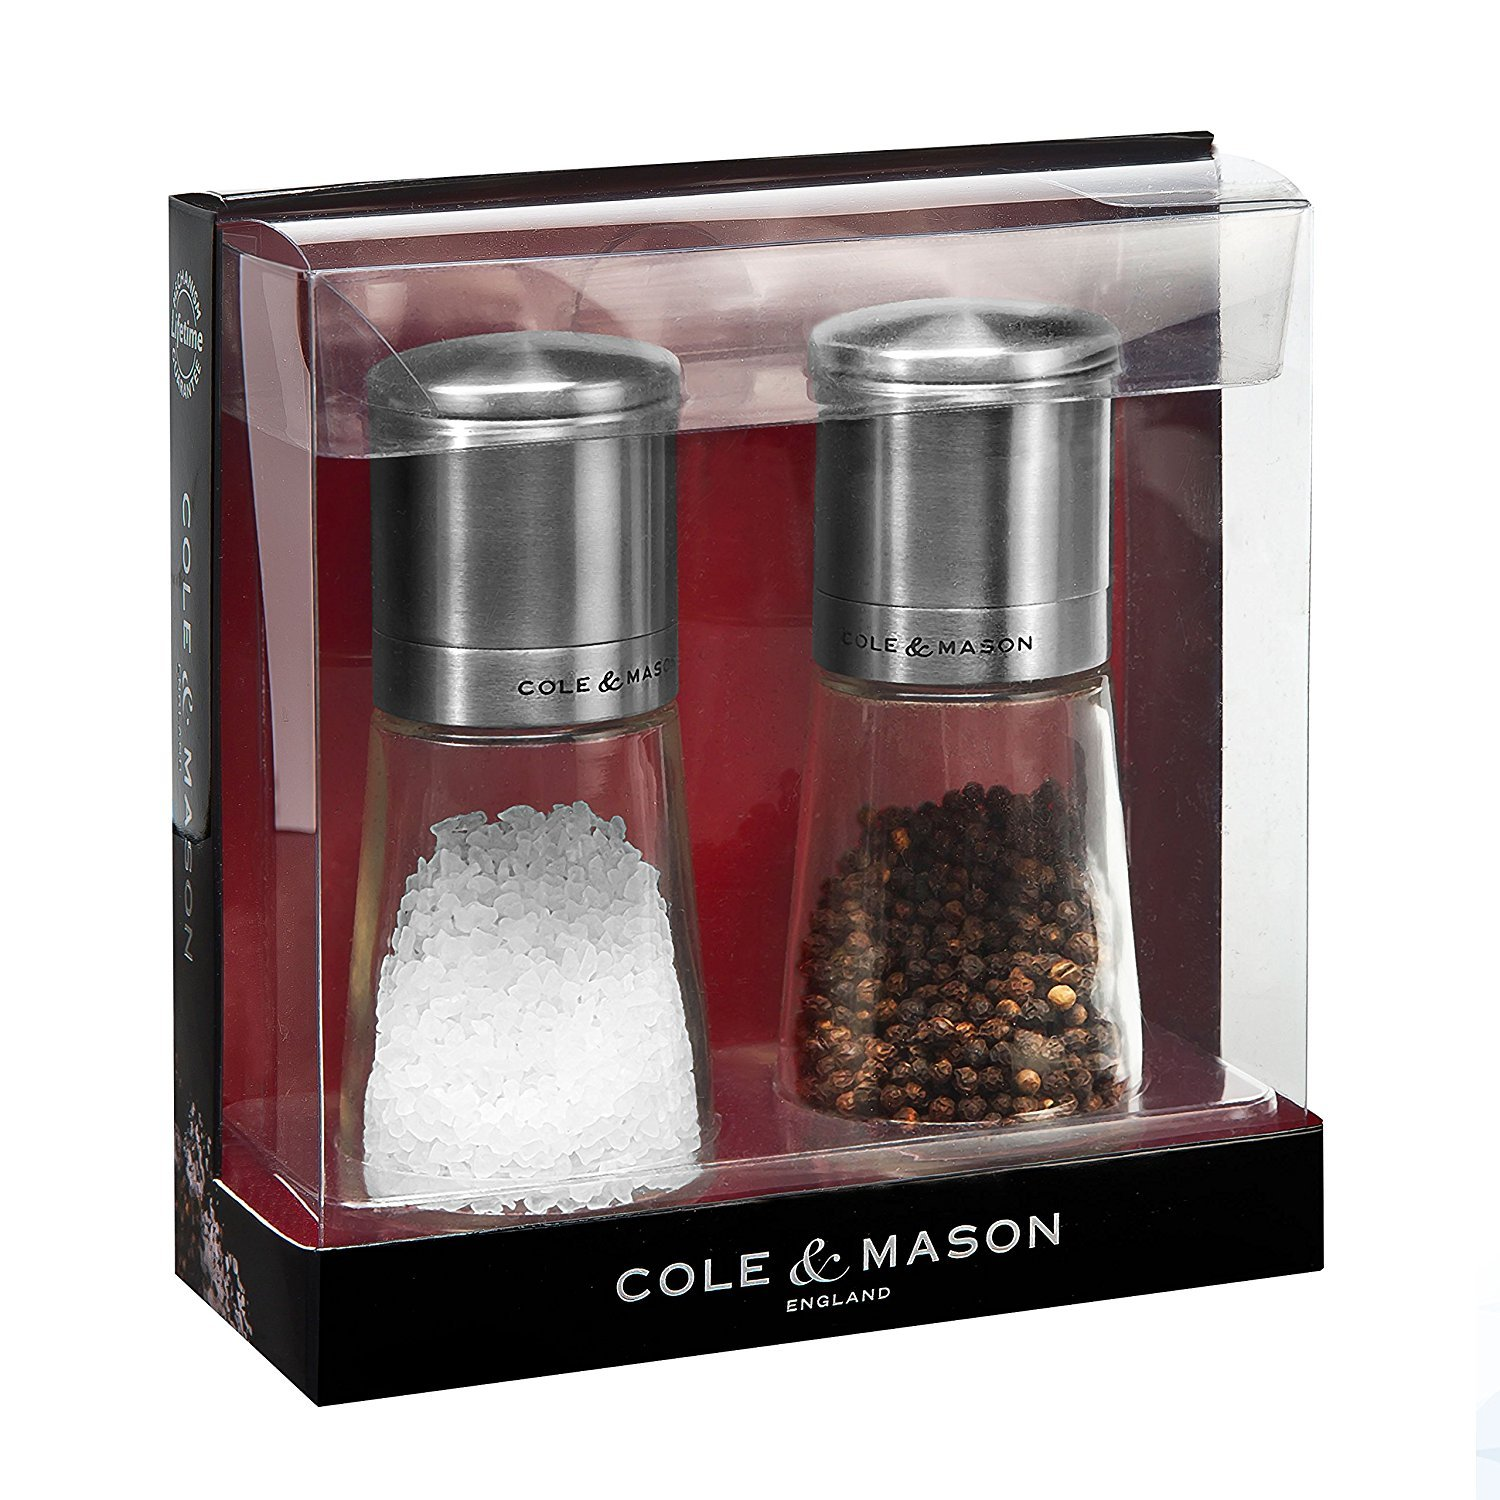 COLE & MASON Clifton Top Grinding Salt and Pepper Grinder Gift Set - Mills Include Precision Mechanisms and Premium Sea Salt and Peppercorns, Stainless Steel and Glass by Cole & Mason